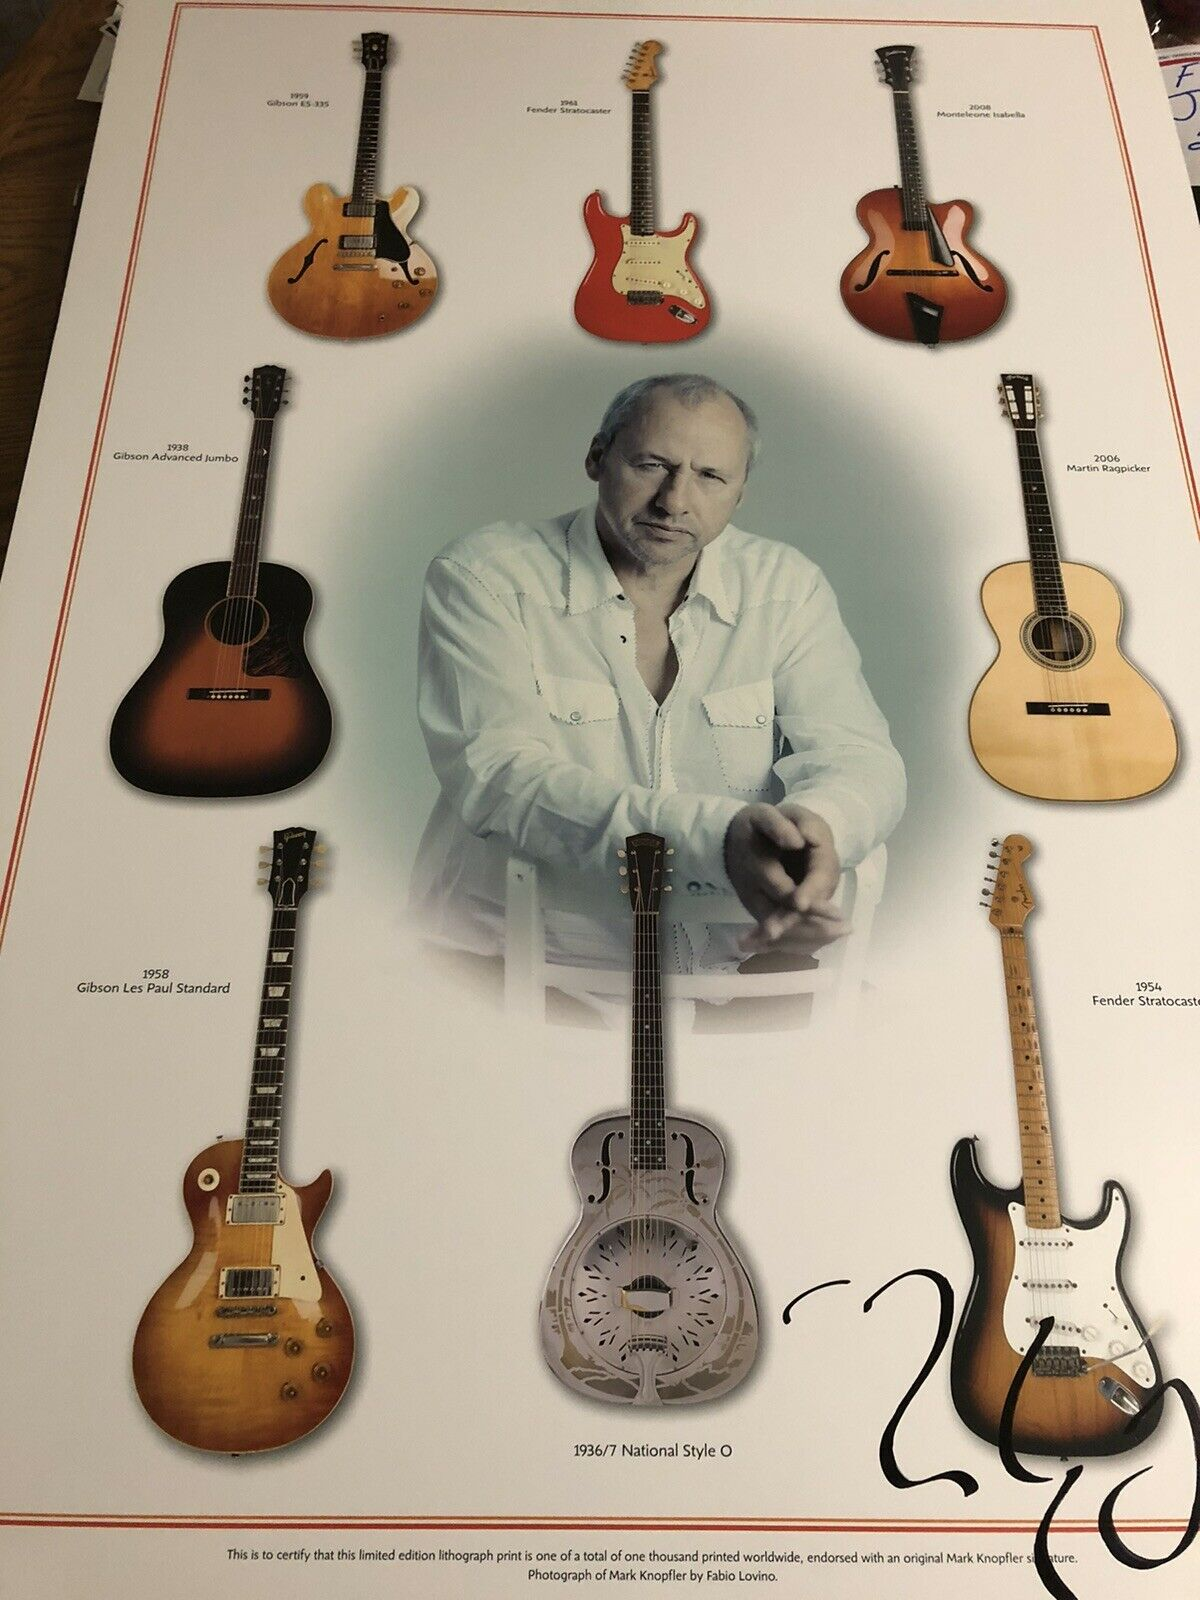 Autographed Mark Knopfler Lmtd Ed Concert Poster Signed Numbered Lithograph on eBay thumbnail